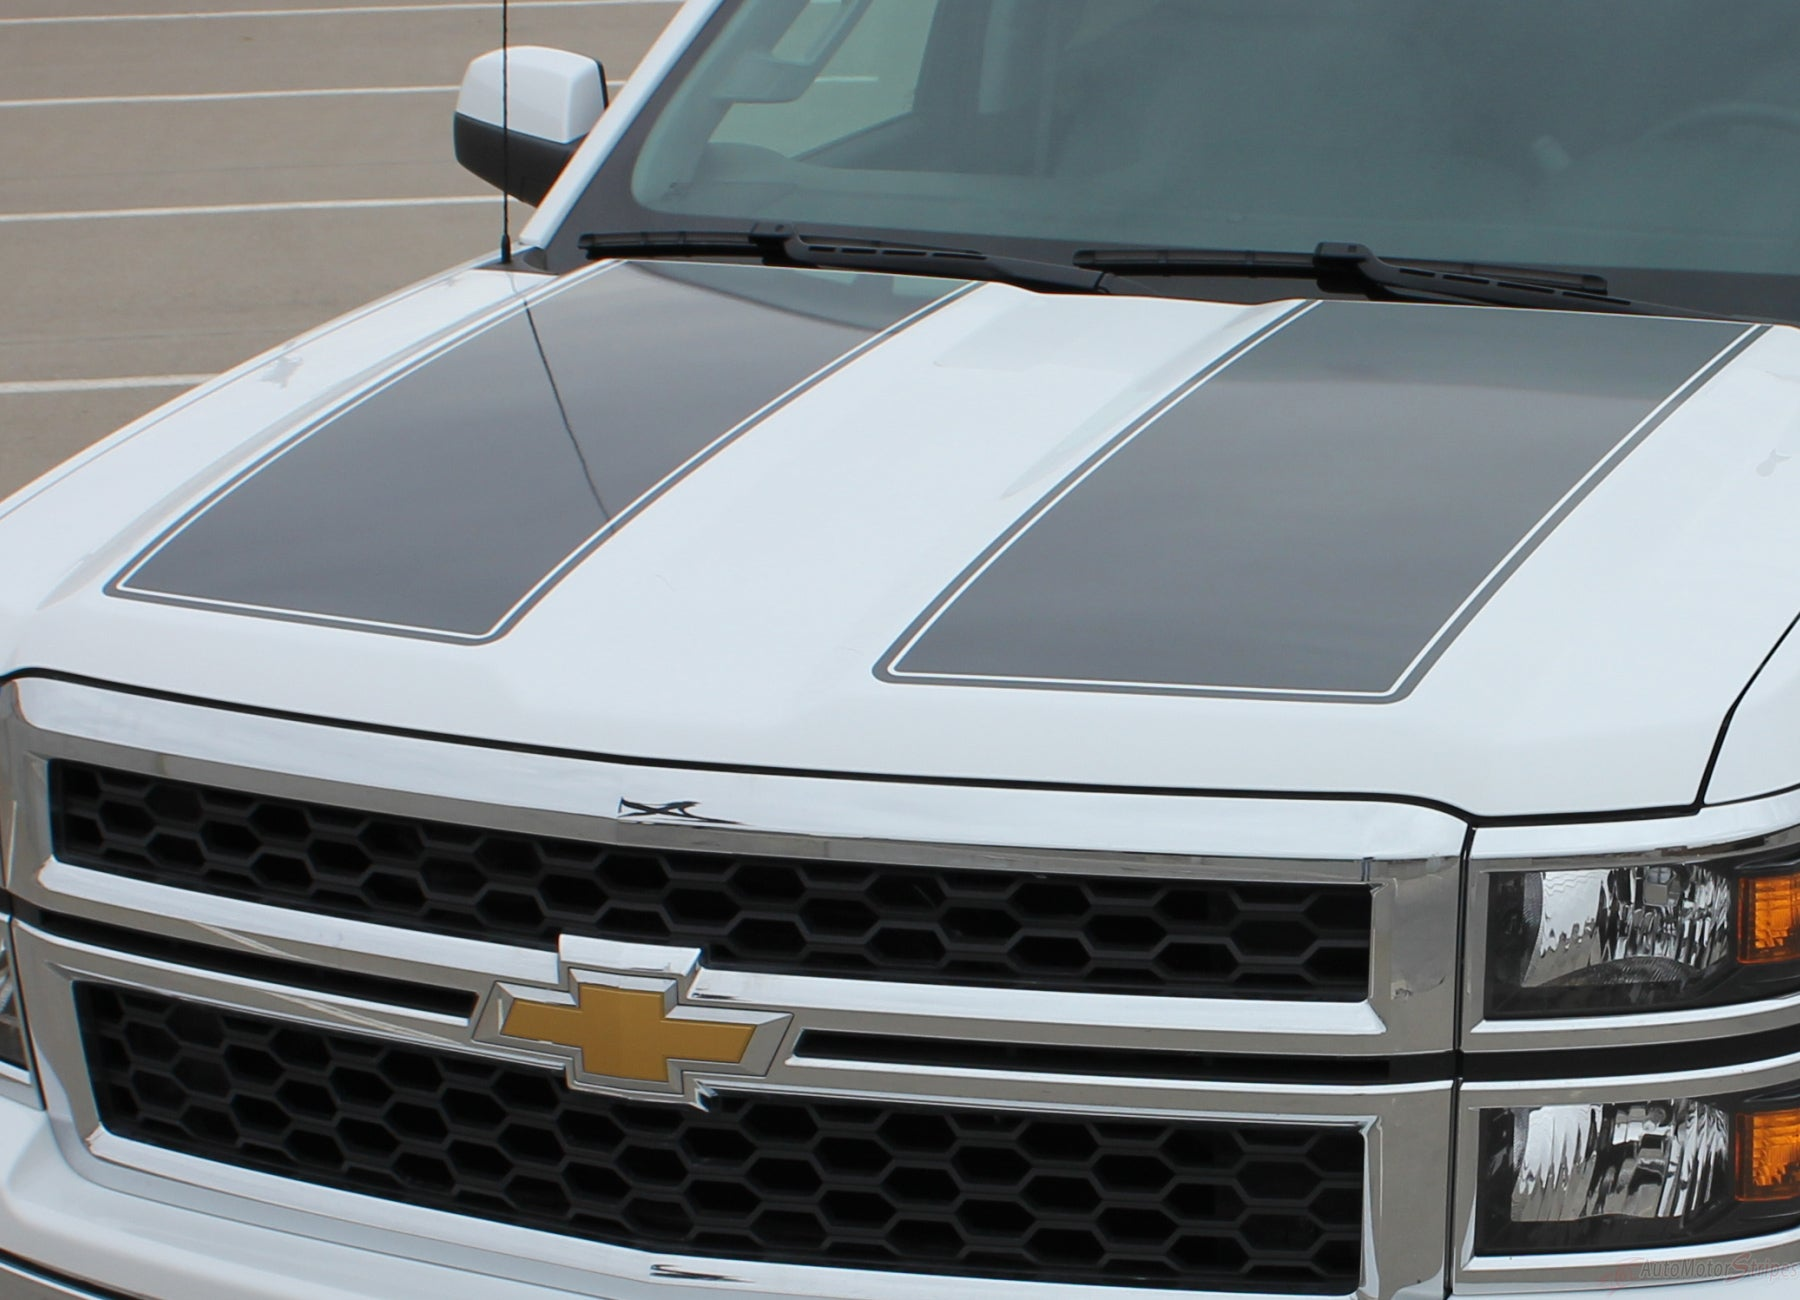 1a0dbda324 2014-2015 Chevy Silverado 1500 Rally Edition Style Truck Racing Vinyl  Graphics 3M Stripes Kit. Tap to expand